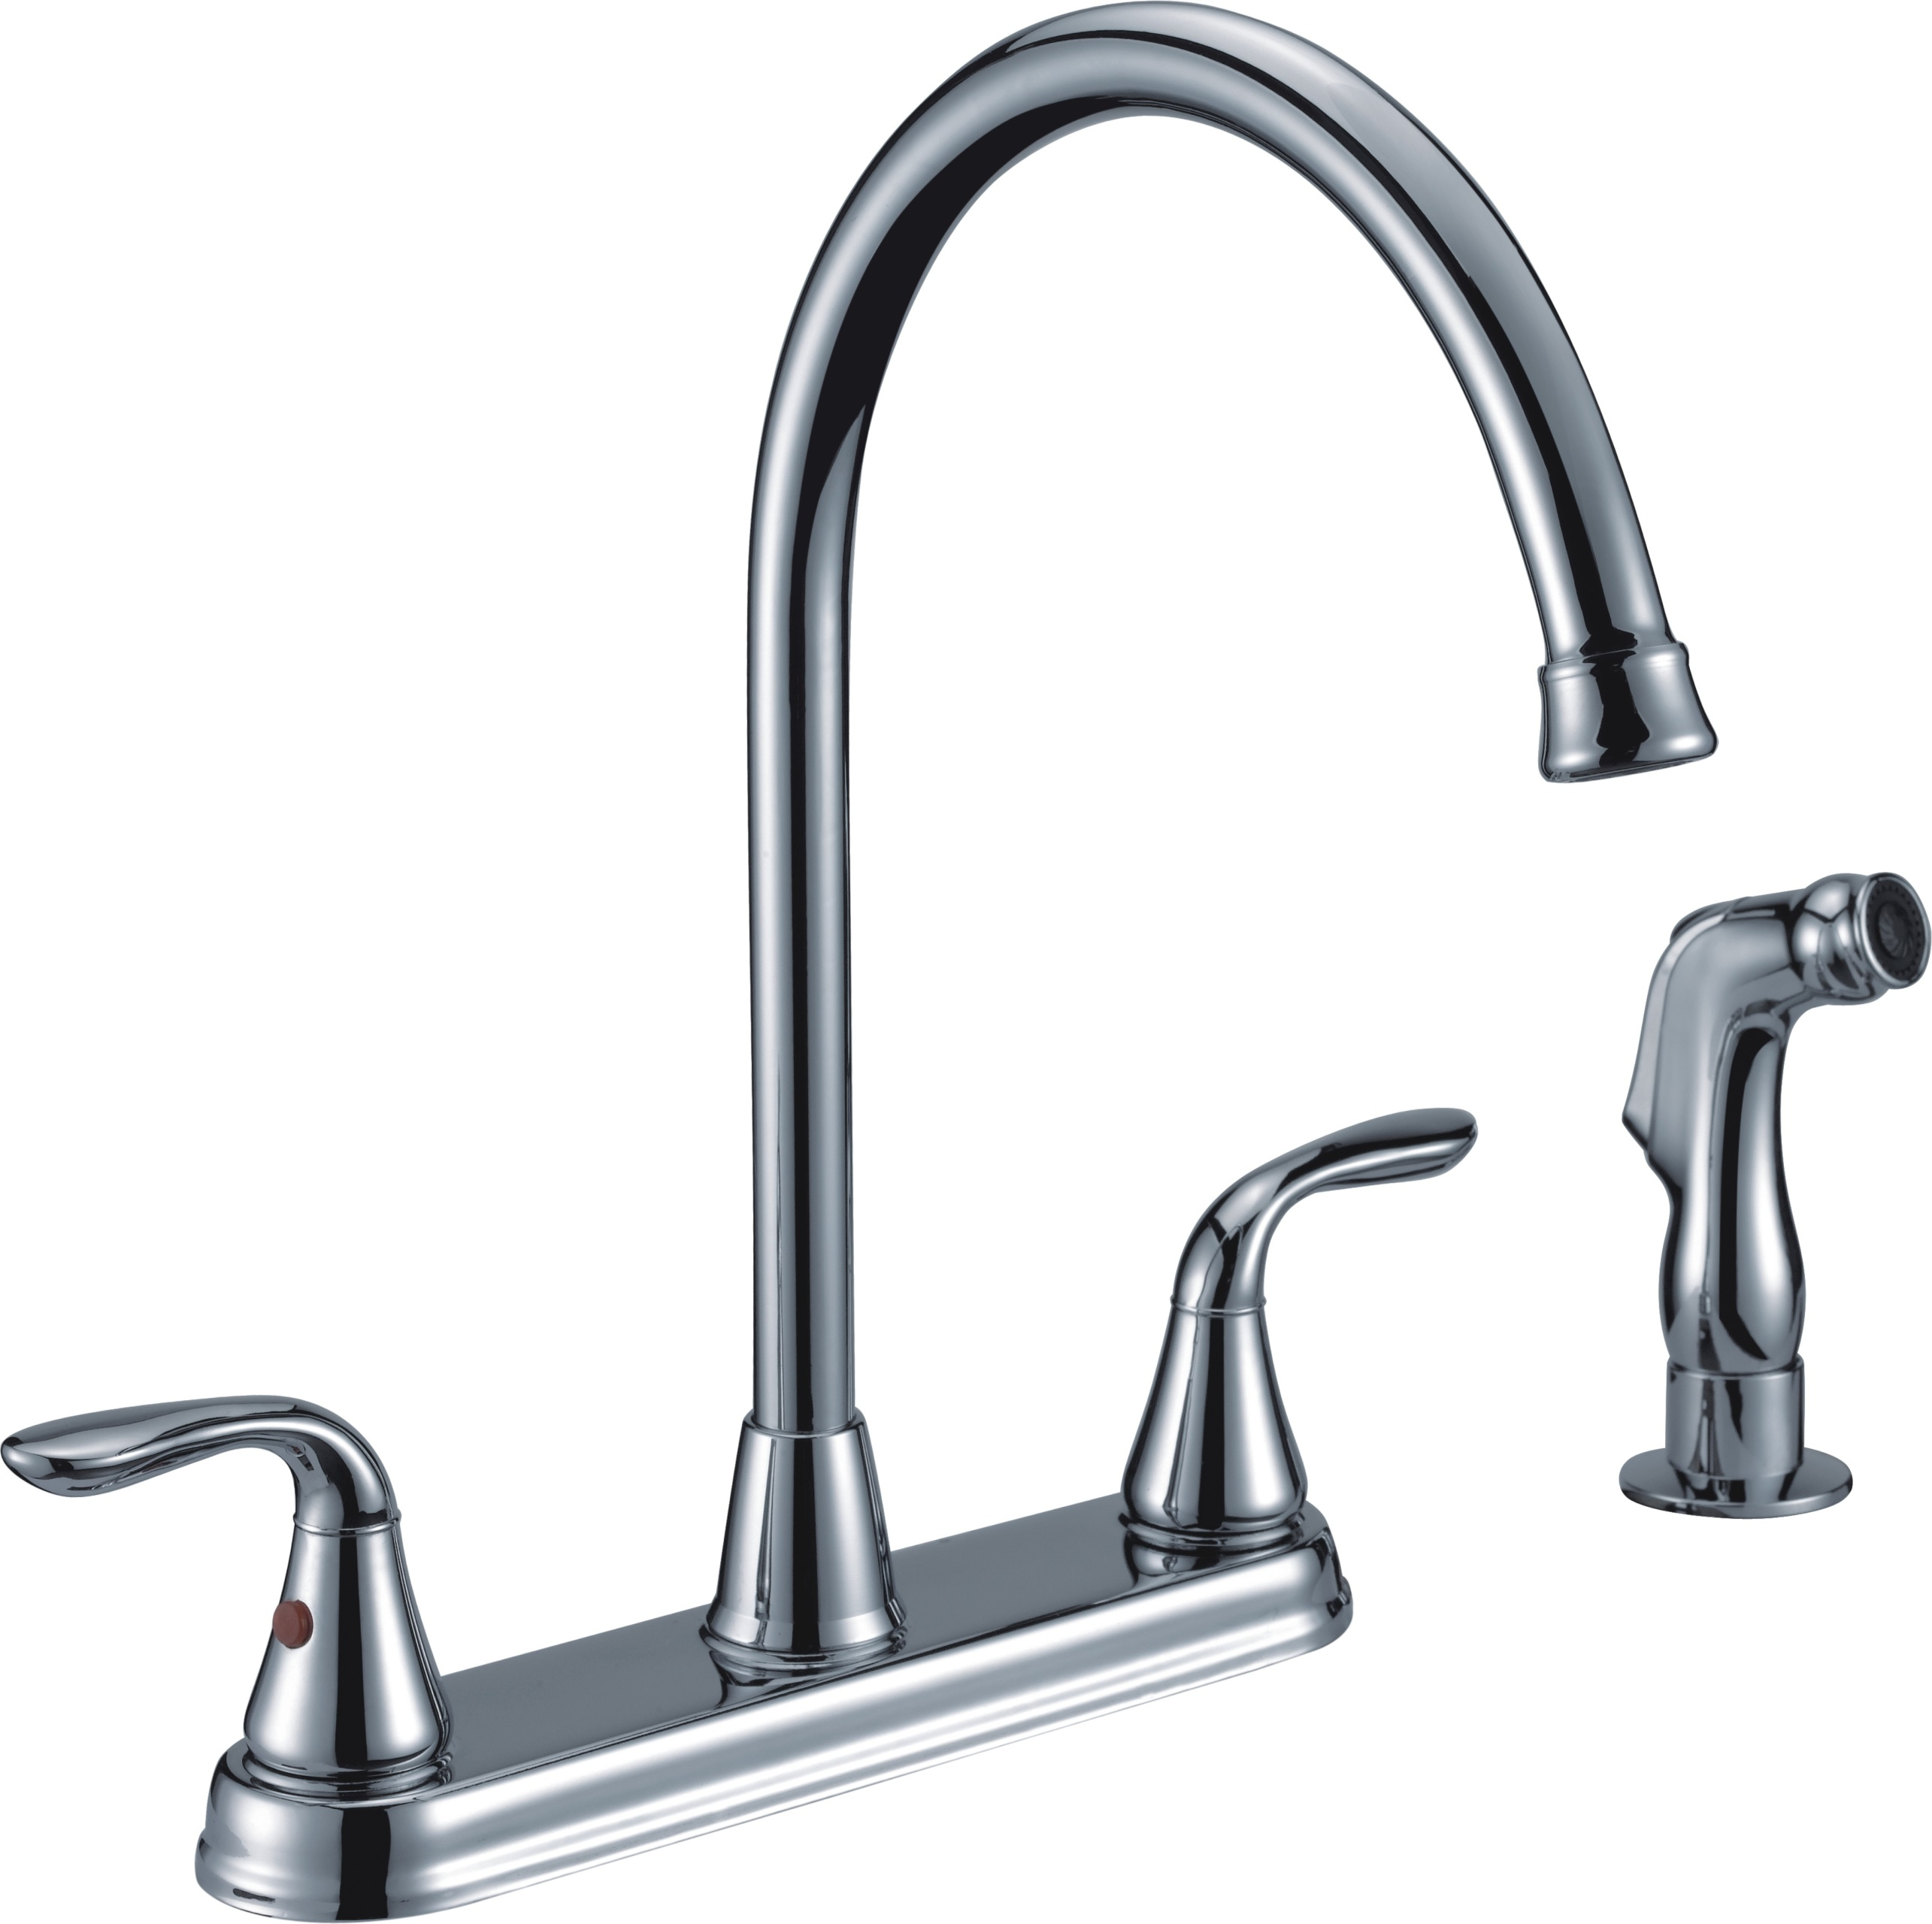 kitchen faucet with side sprayer design for a small space two handle high arc spray